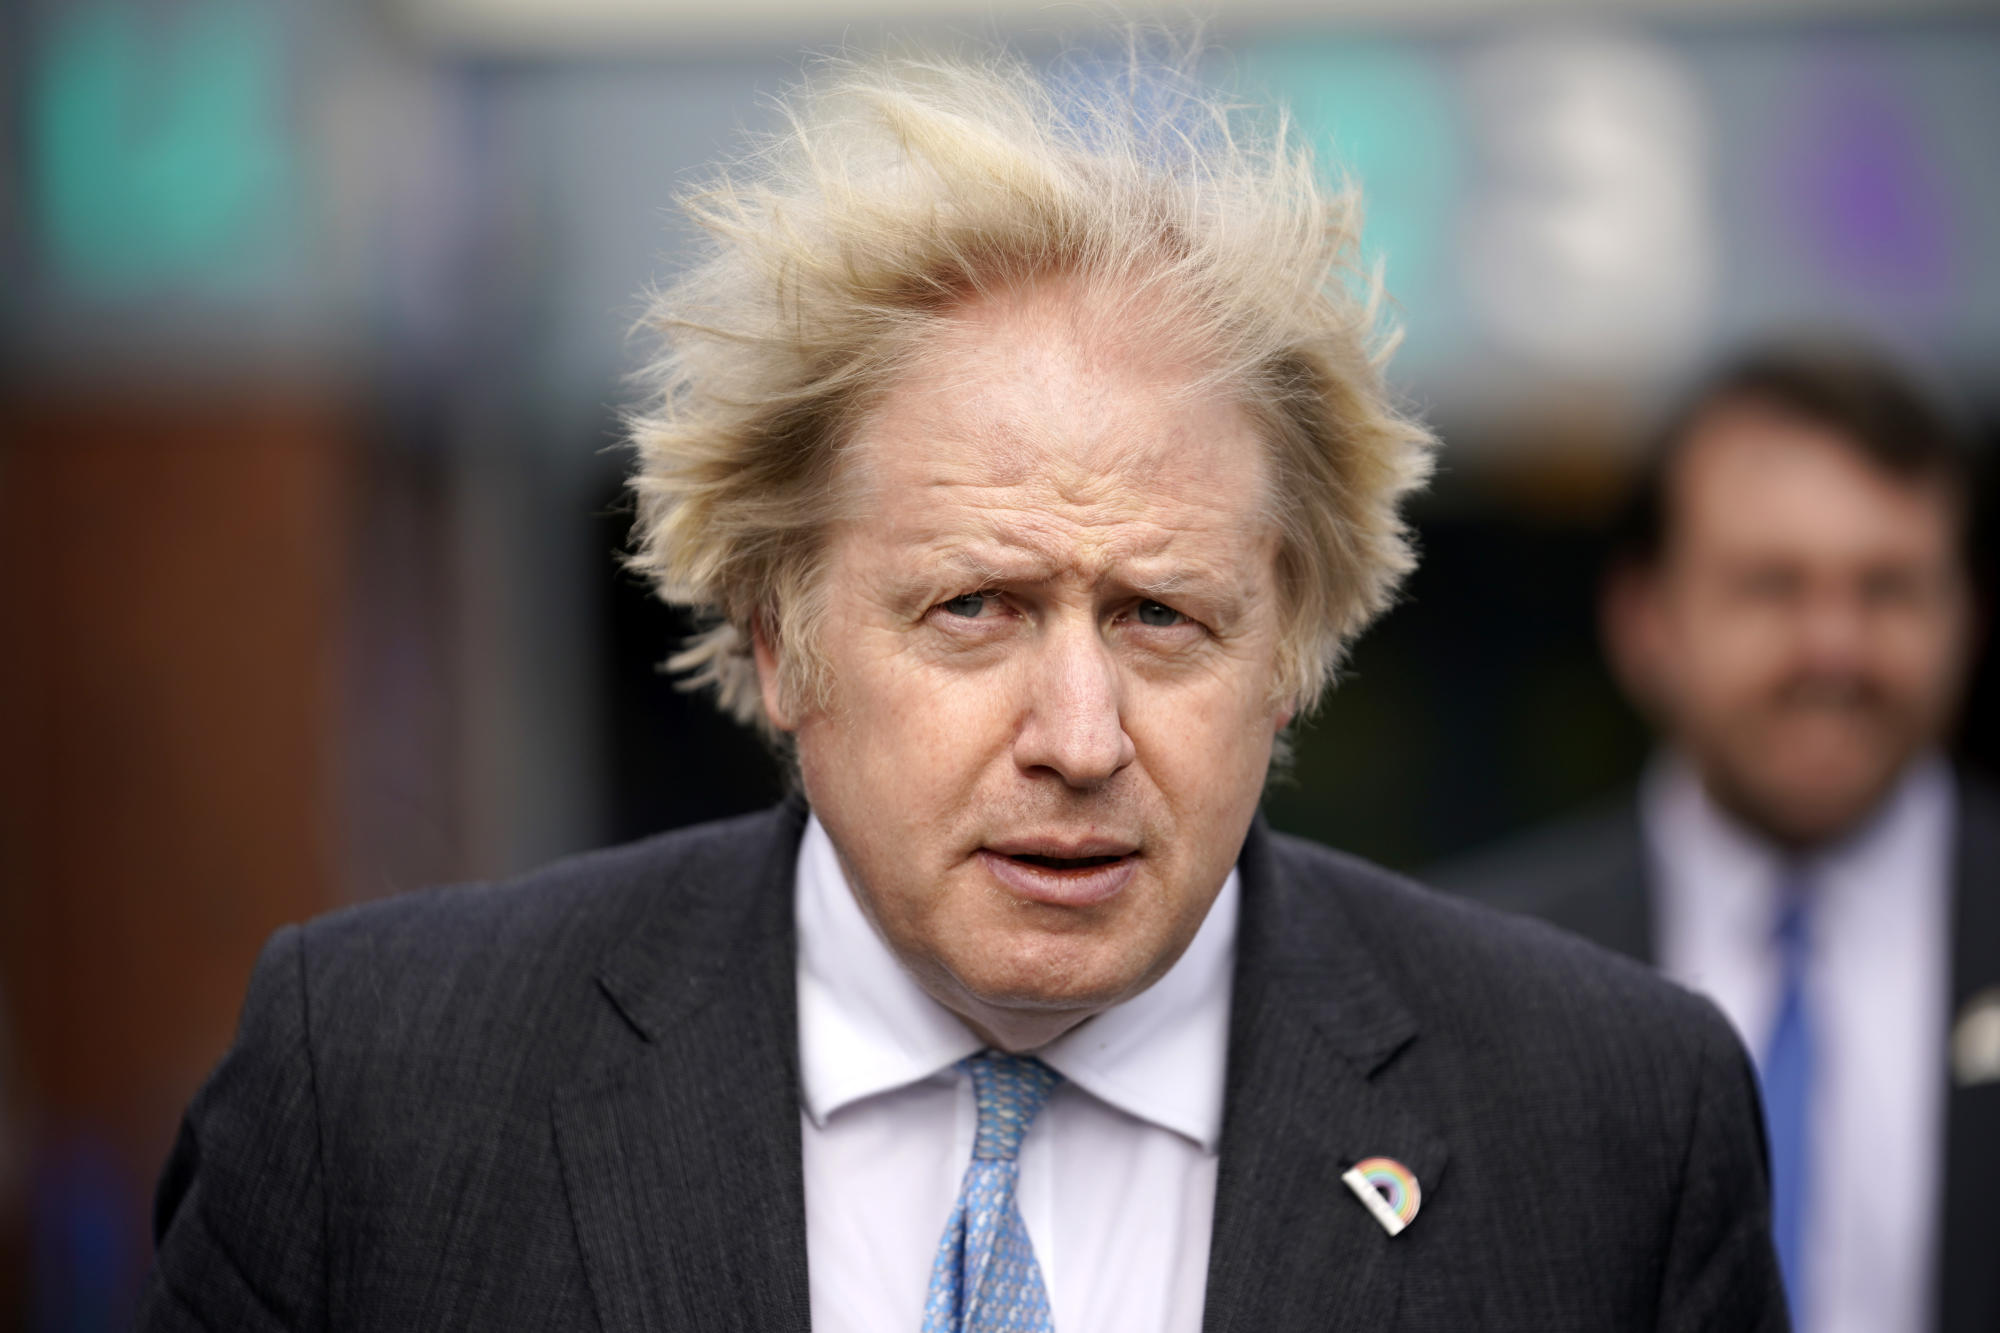 Boris Johnson was grilled over Brazil variant seven weeks before it arrived in UK